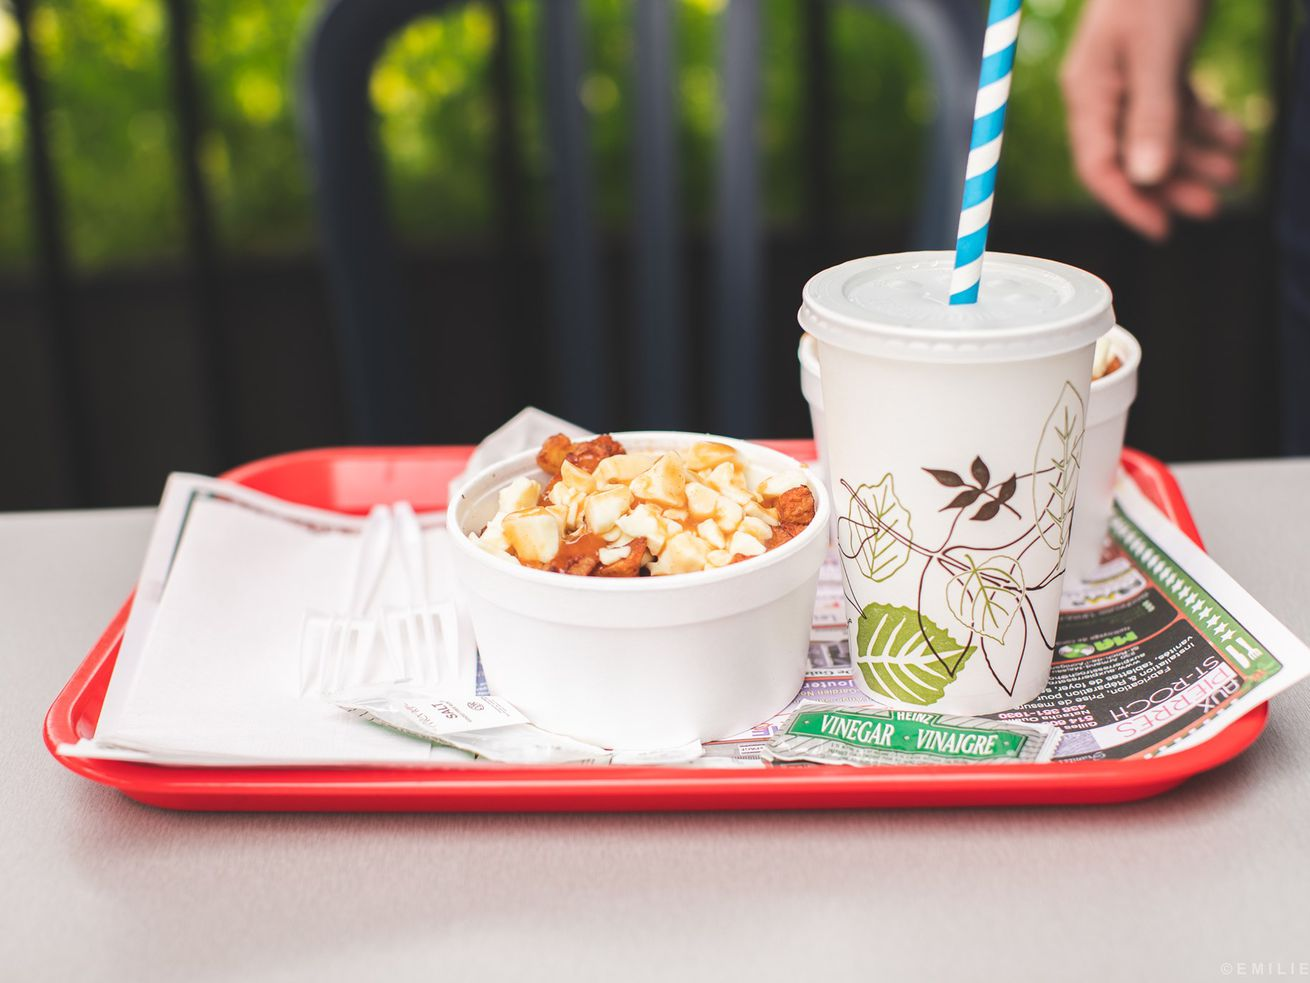 tray with poutine and drink